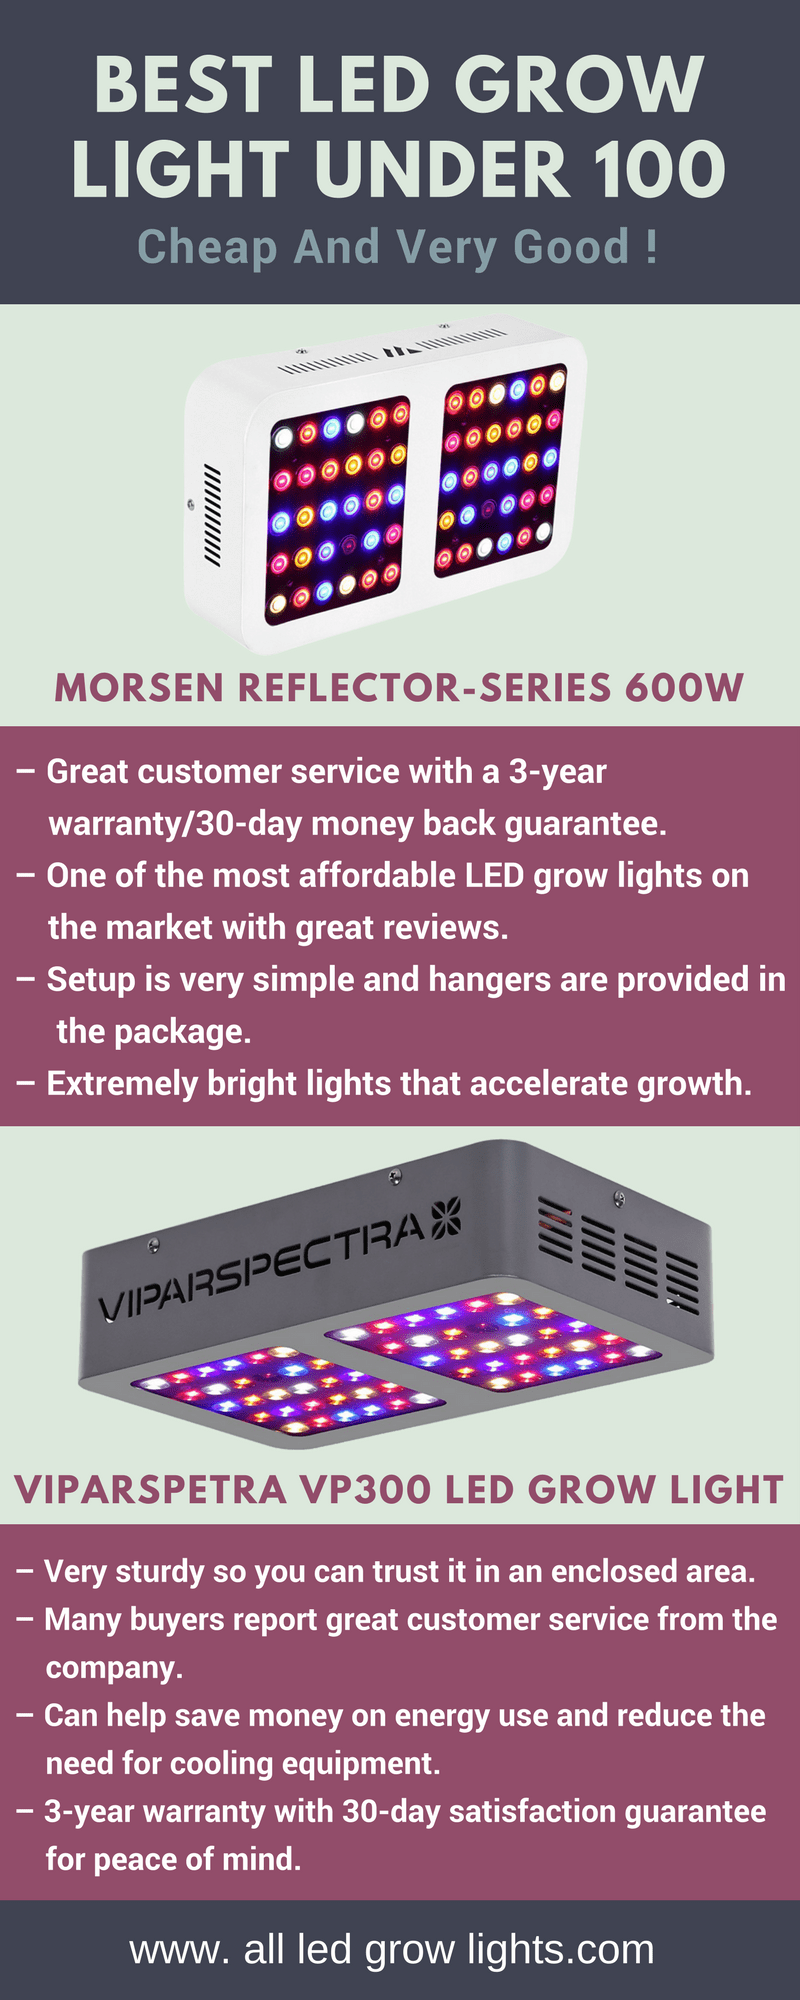 Best LED Grow Light Under 100 info graph